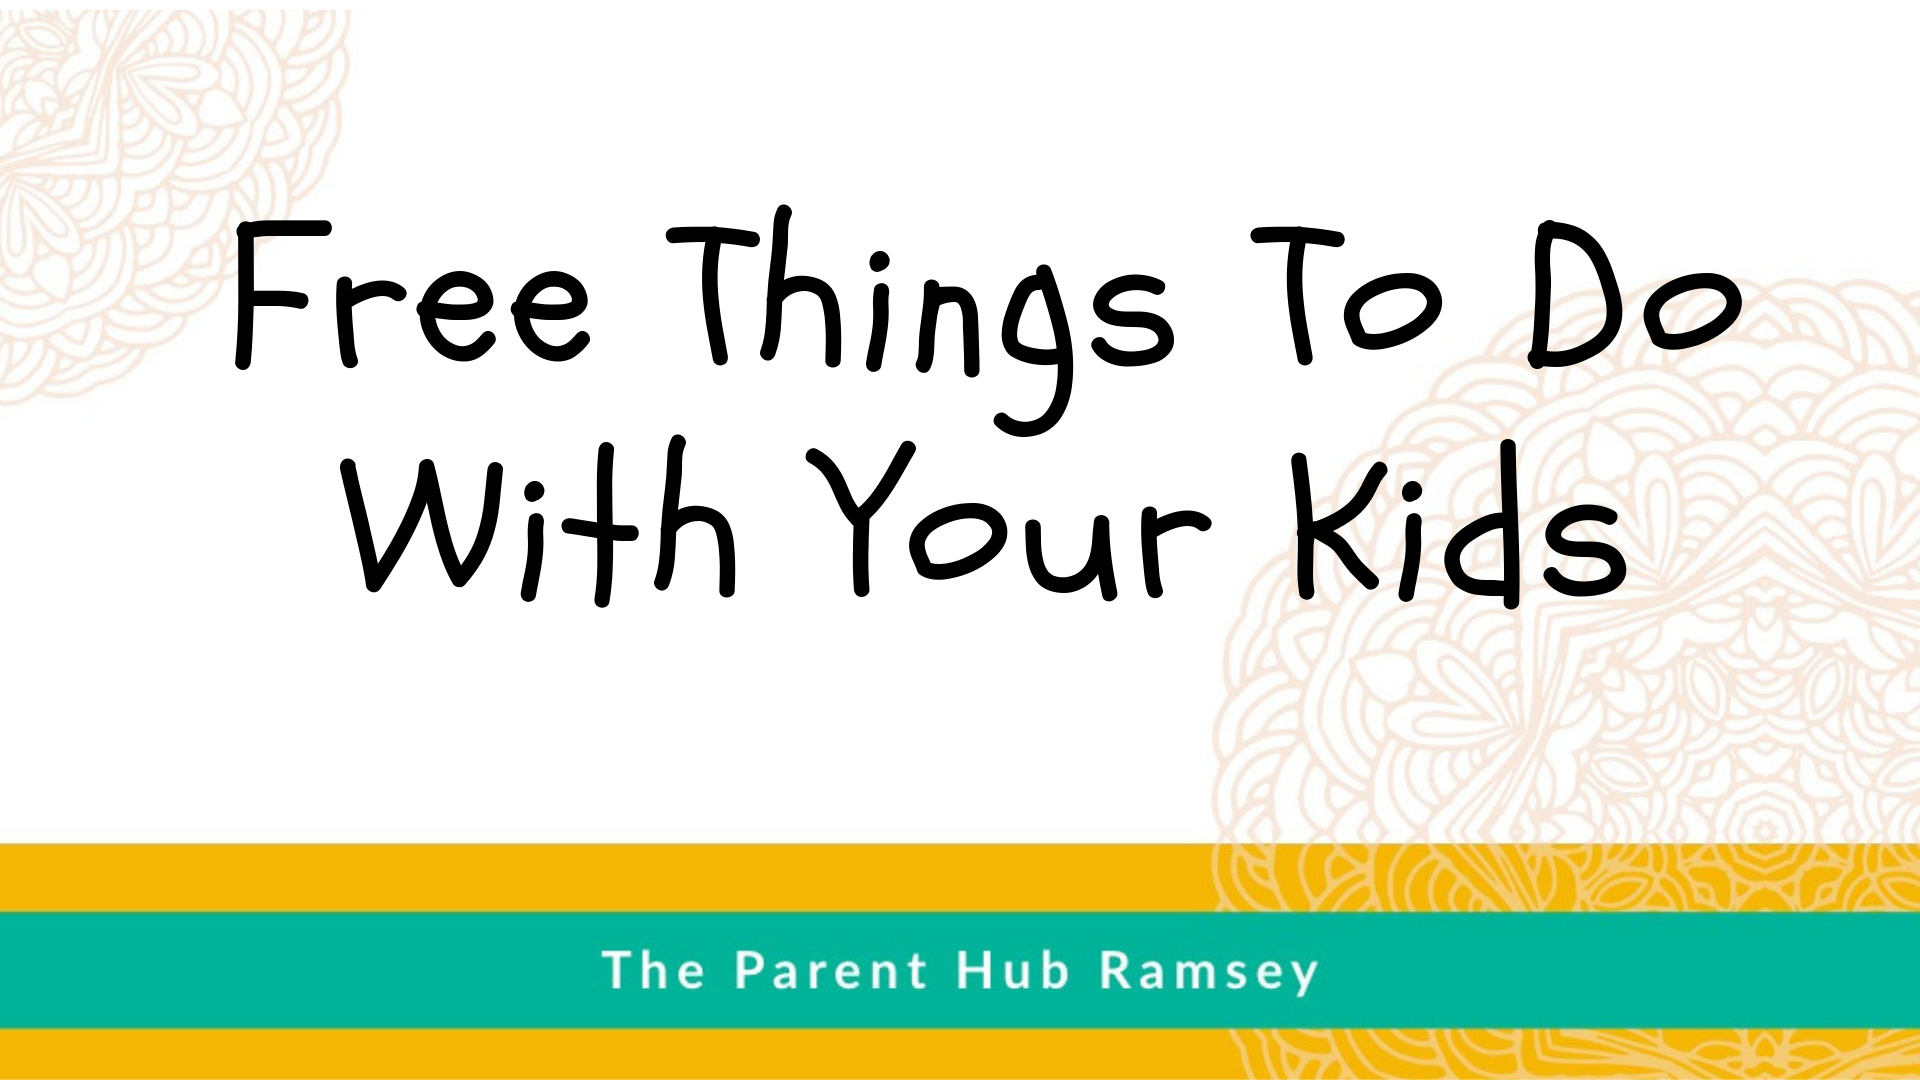 Free Things To Do With Your Kids